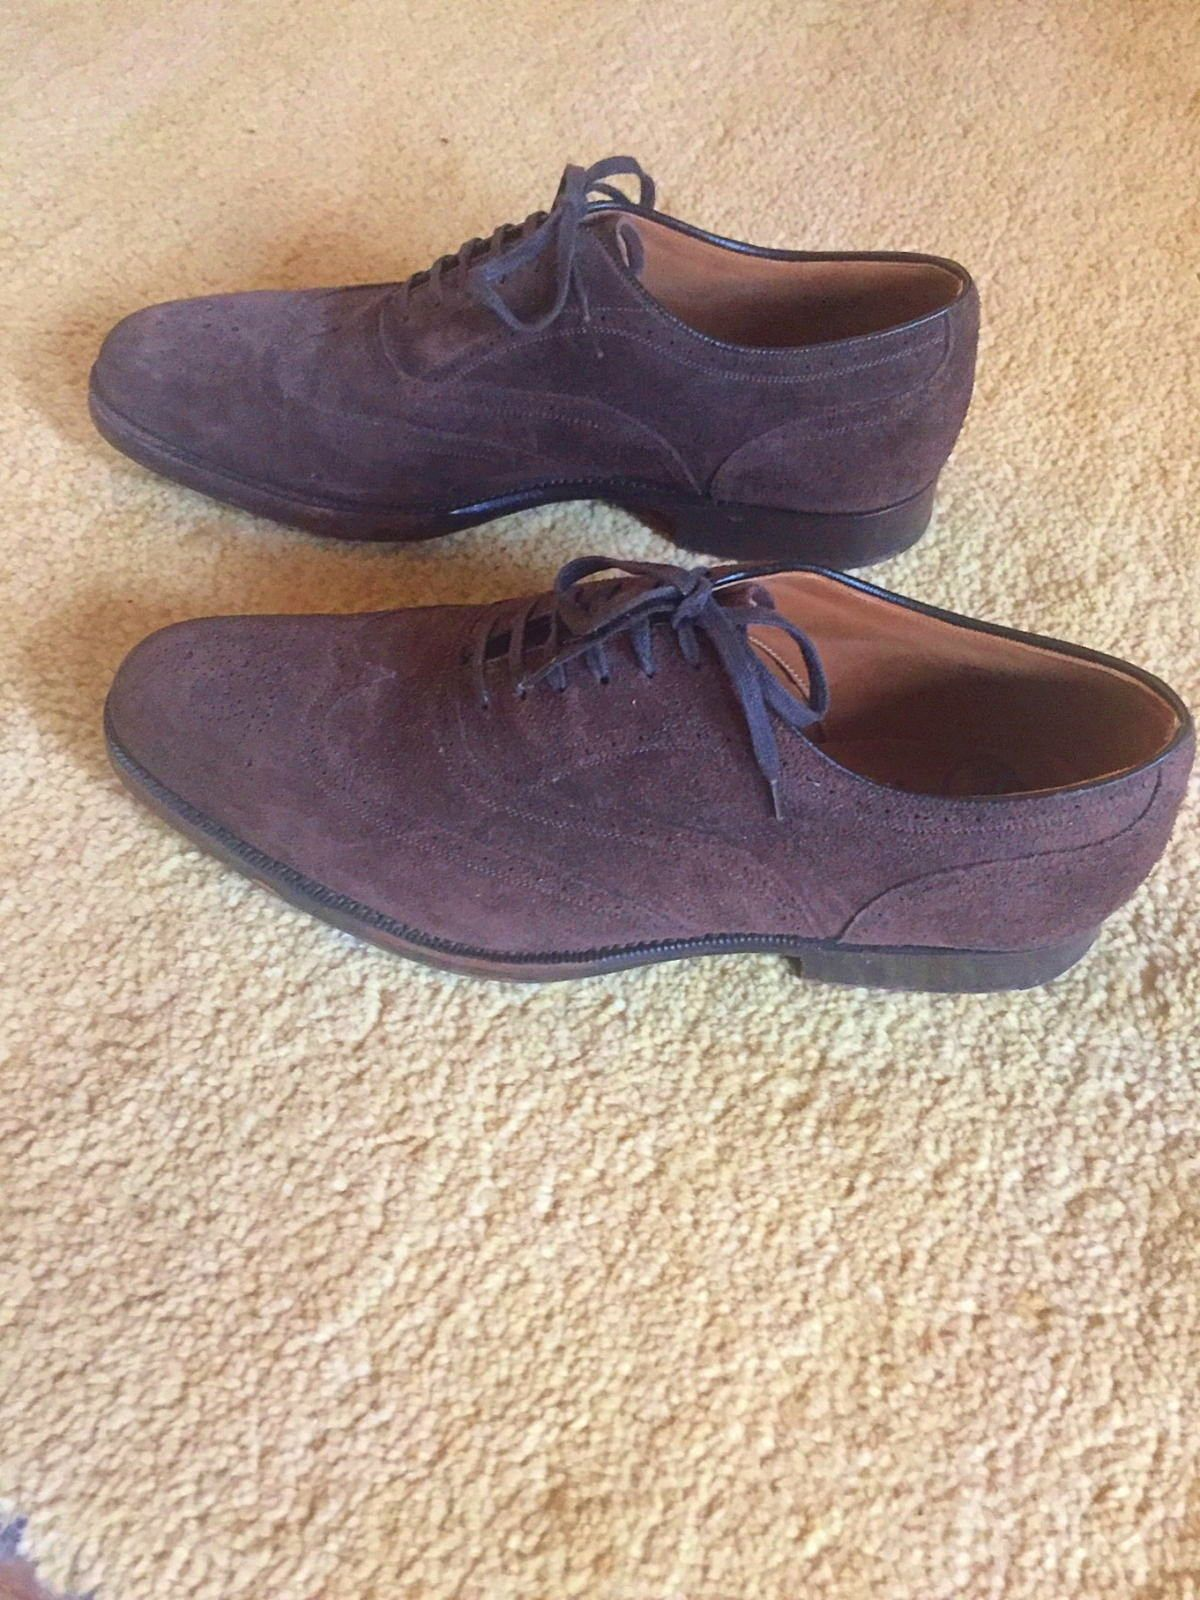 Chaussures Hommes Church'-Tods - Pointure 43